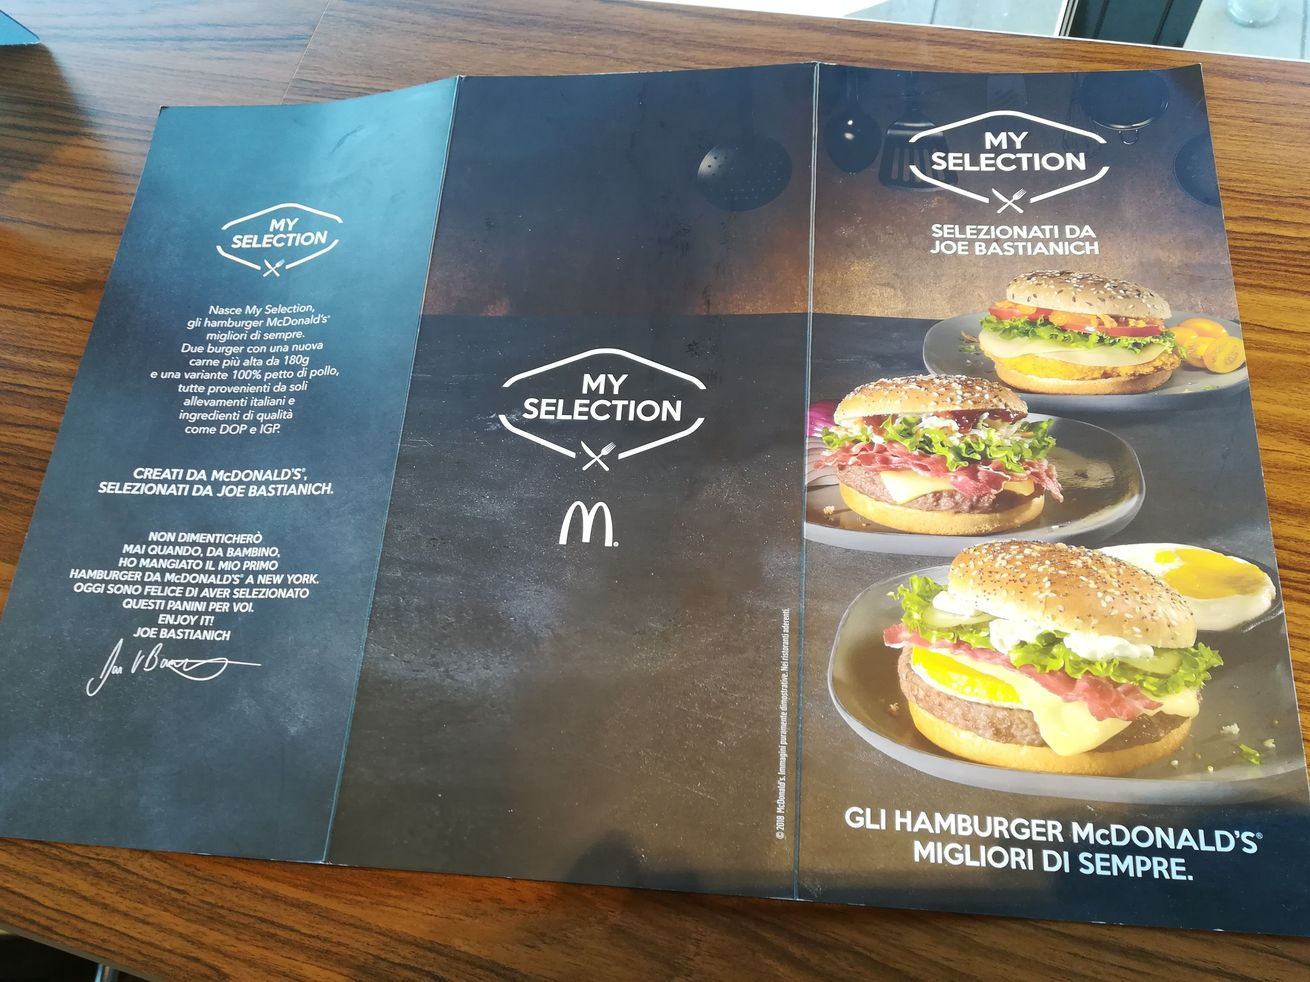 mc donalds bastianich menu